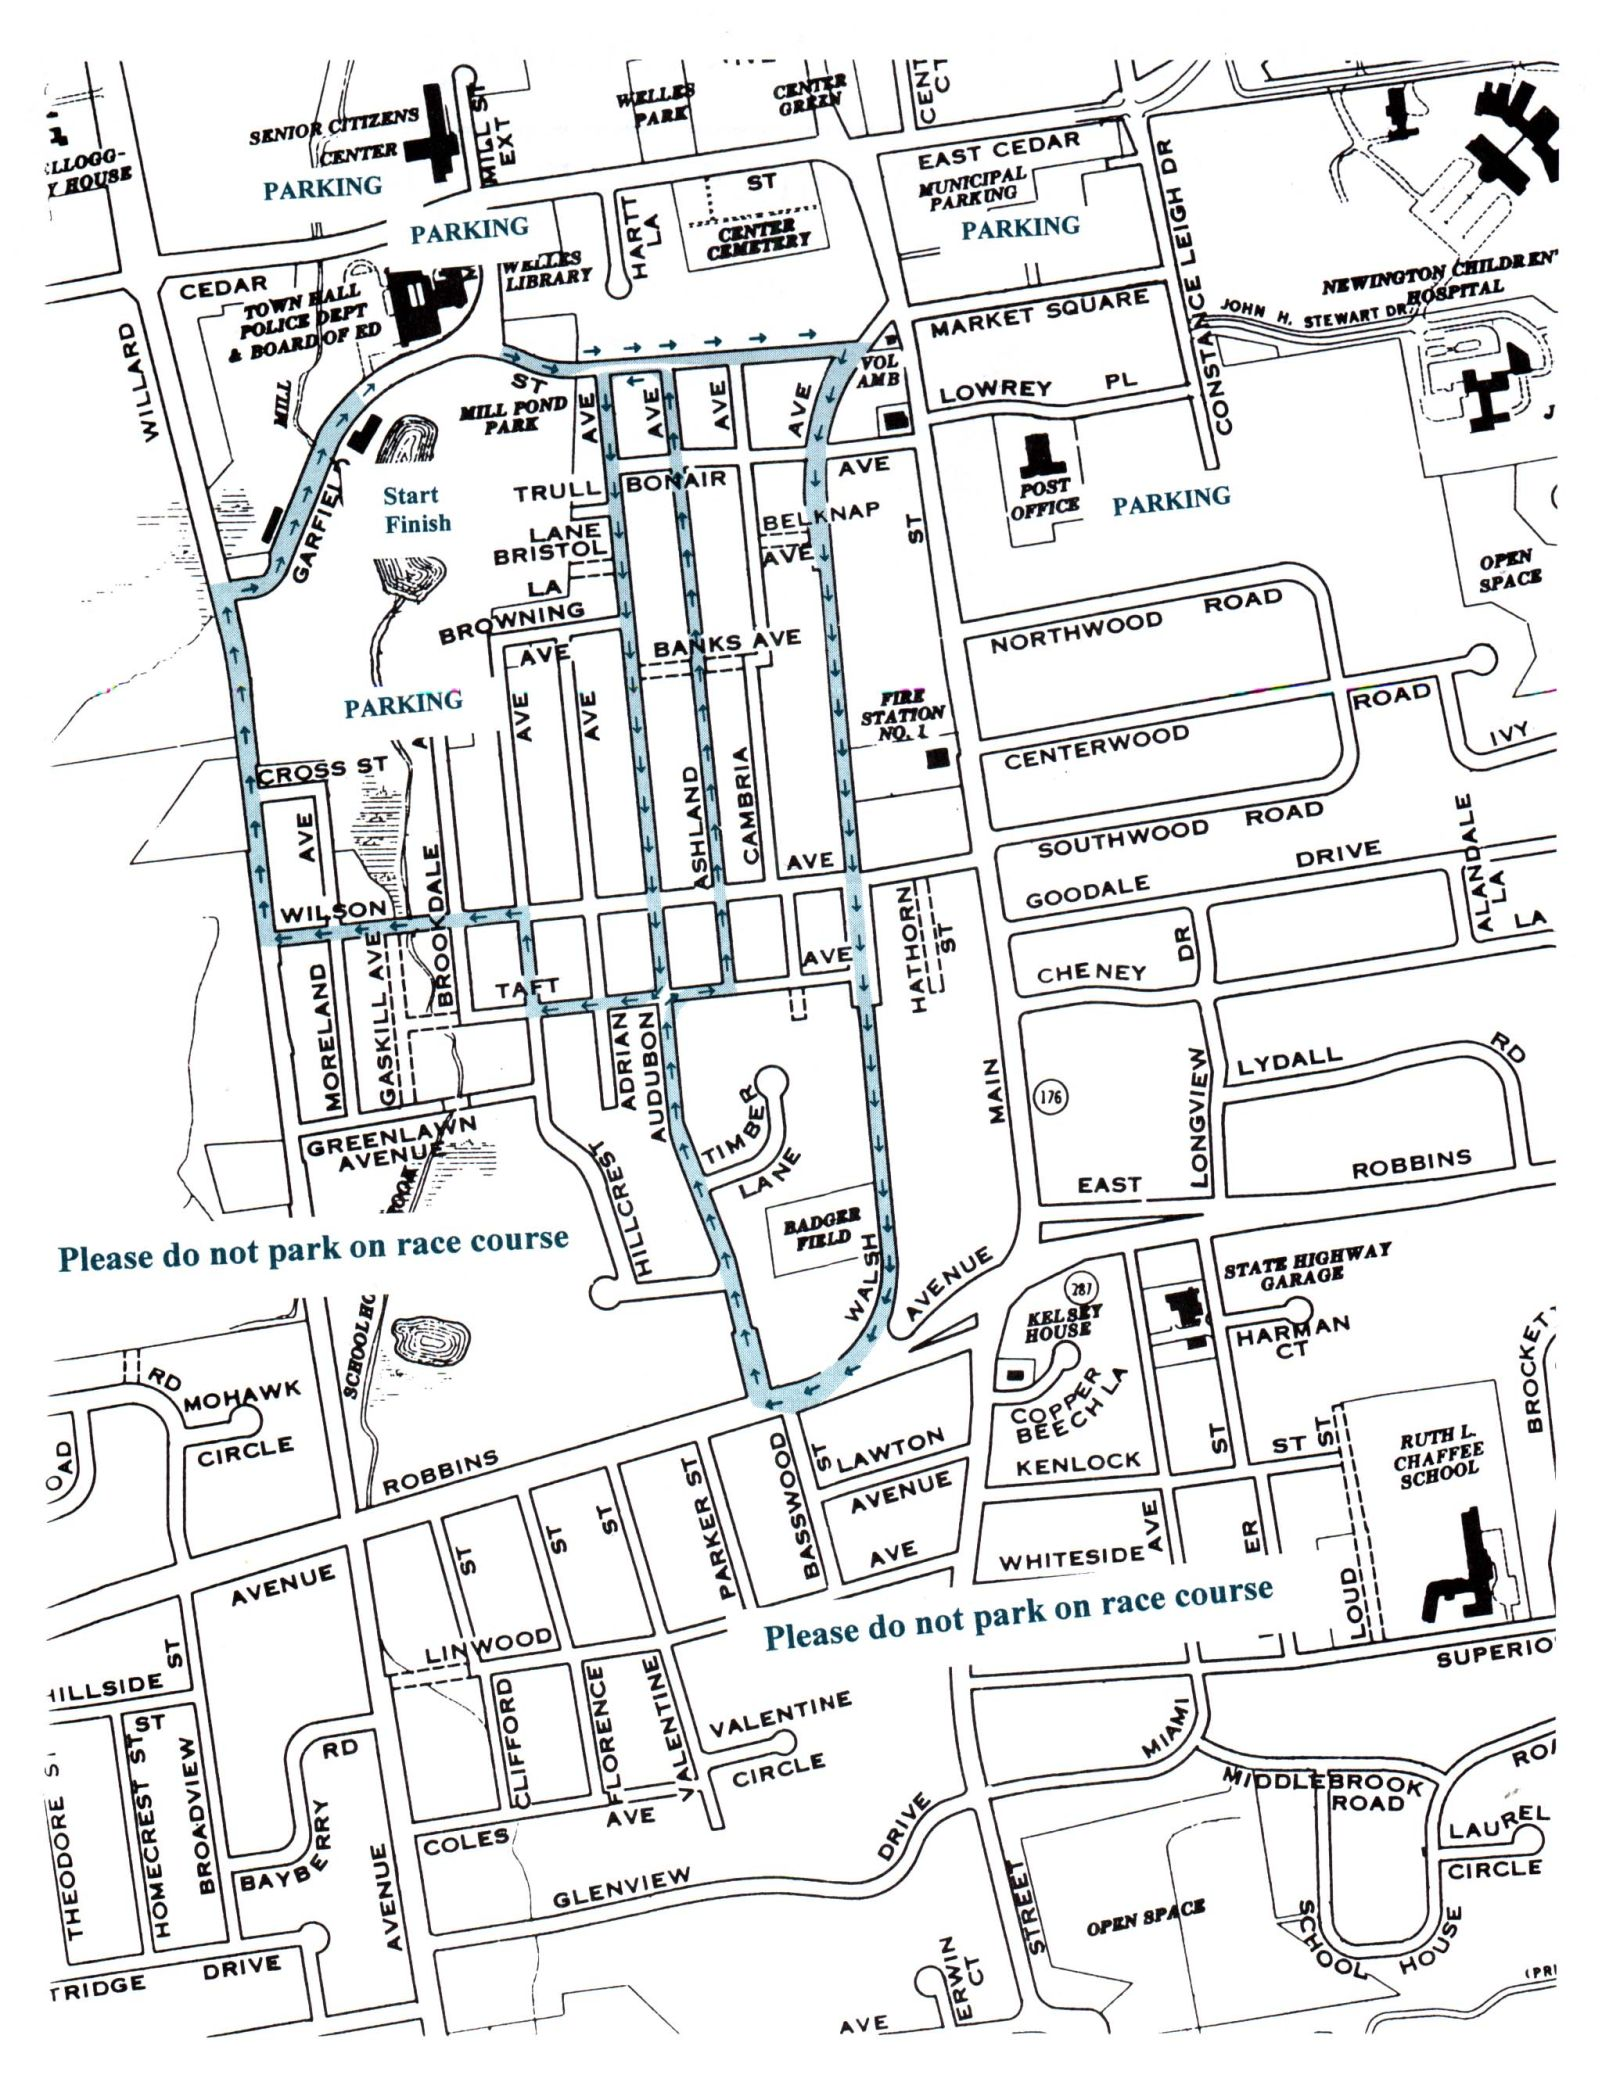 Newington Library 5K Challenge road race map